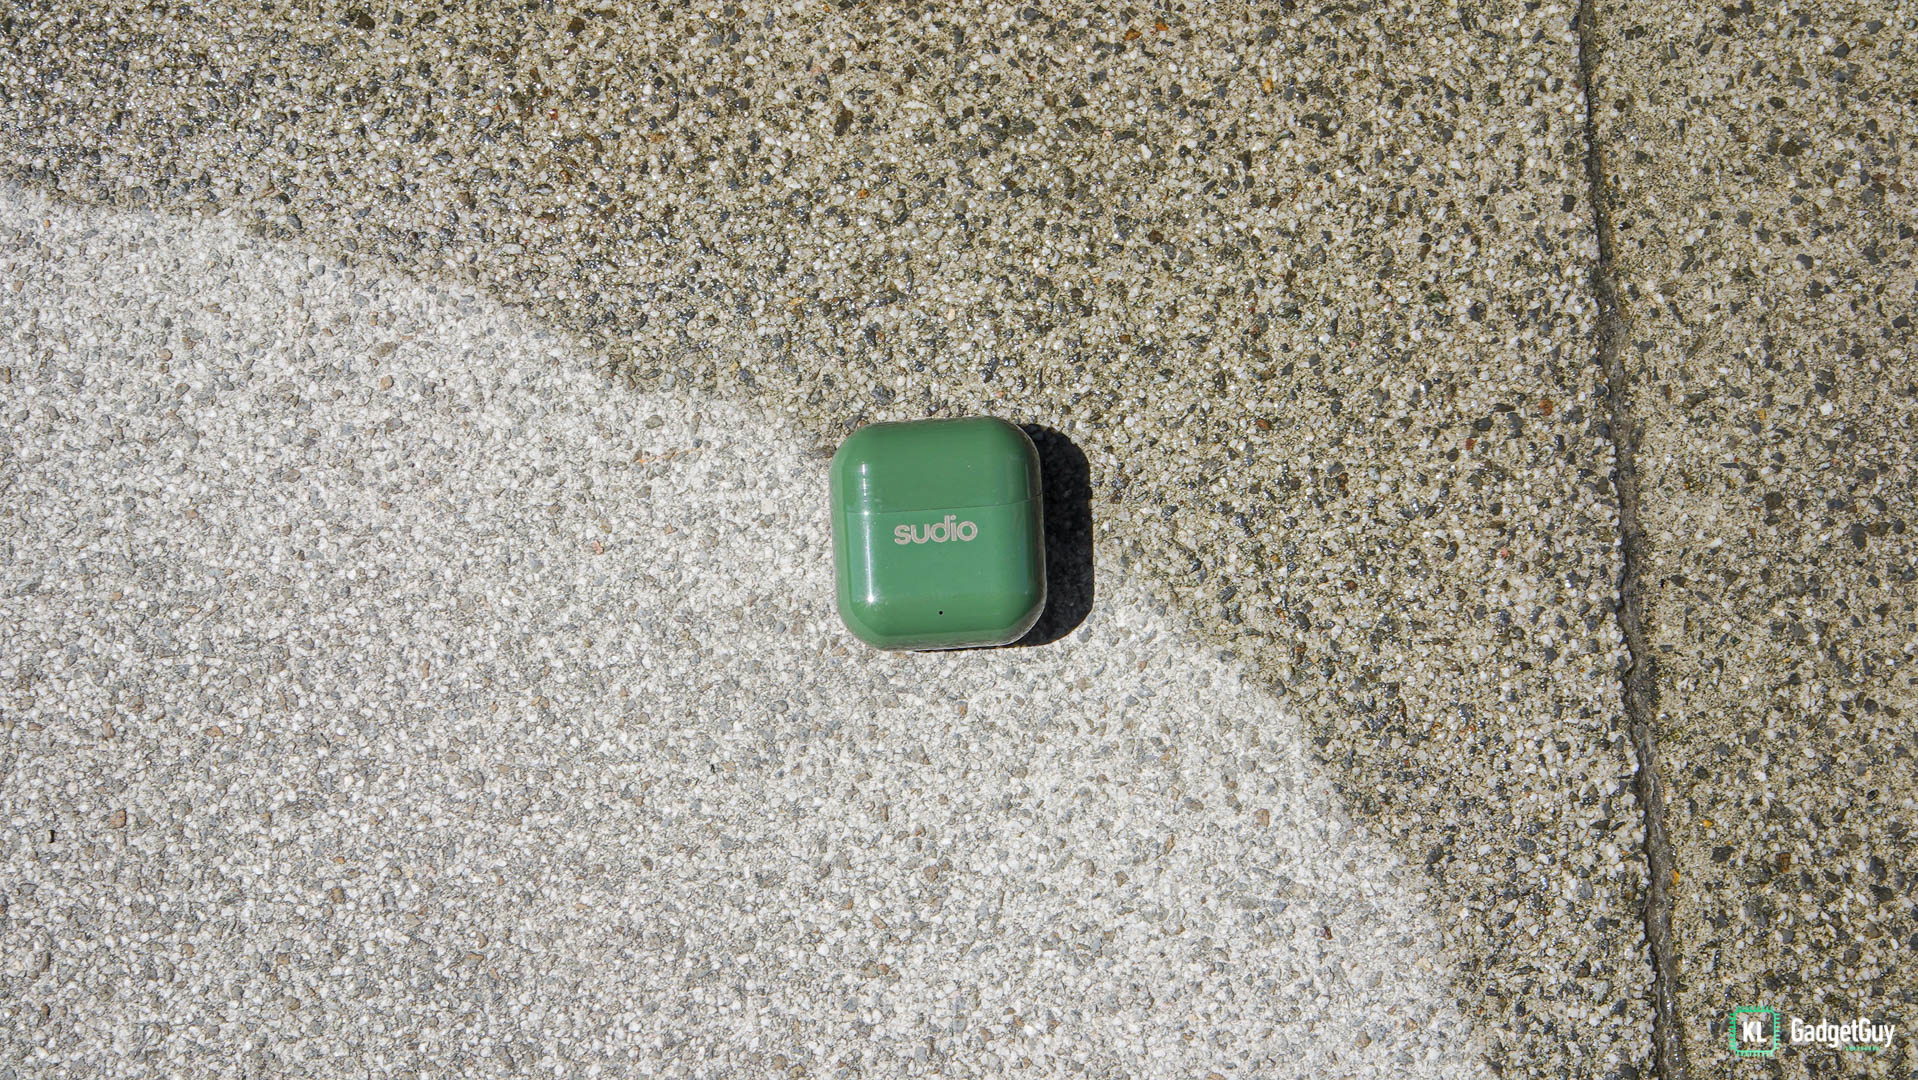 Sudio Nio Review: Simple and reliable (Discount Code Included) 19